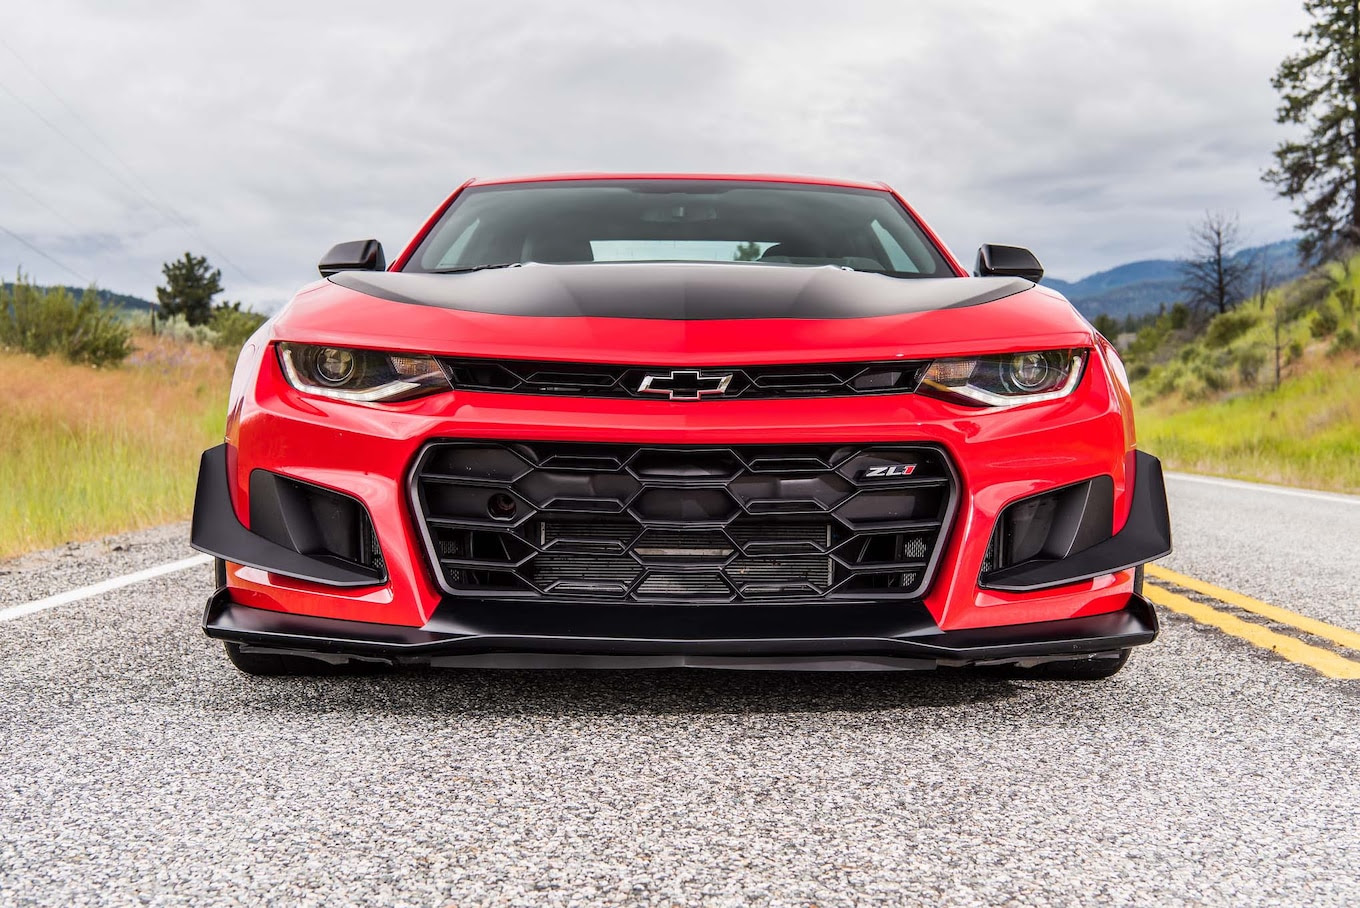 Read more about the 2017 Chevrolet Camaro ZL1 Convertible in the Motor ...